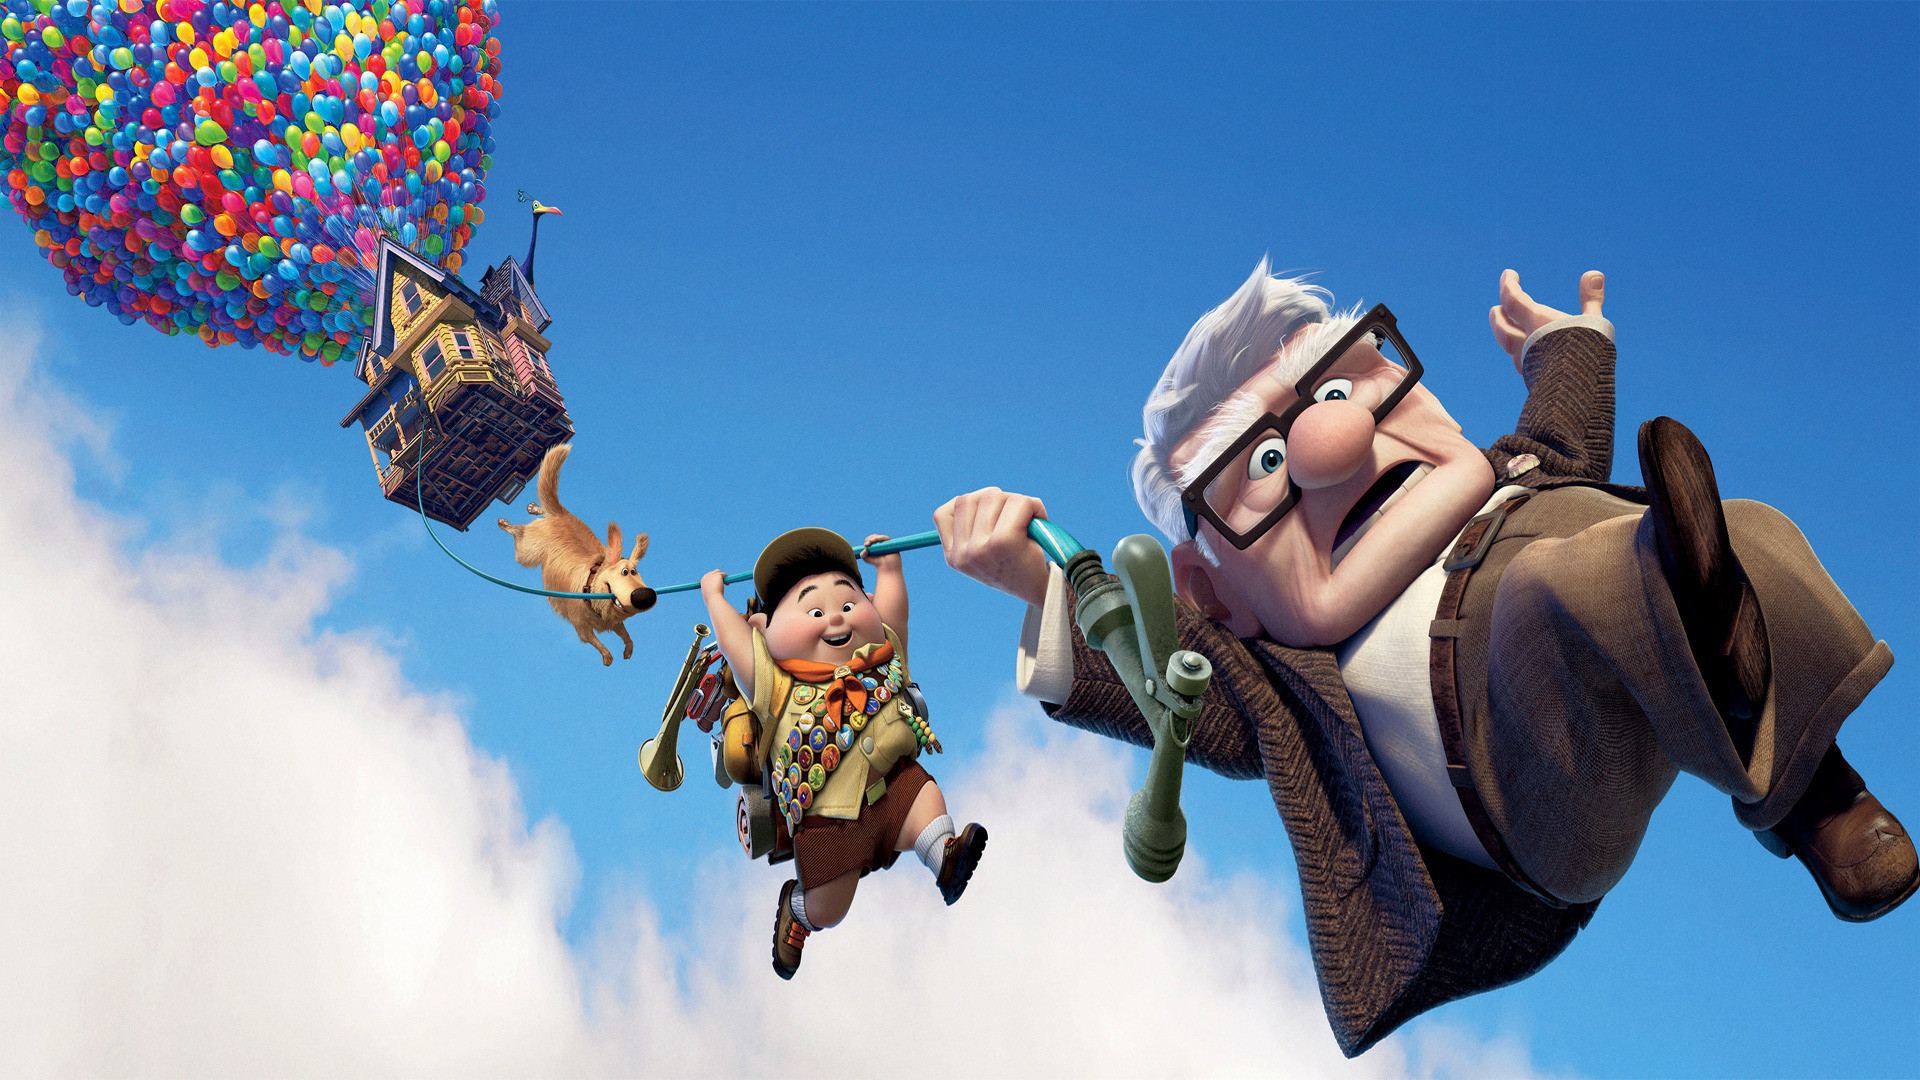 1920x1080 Pixar's UP Dual Monitor HD Wallpapers | HD Wallpapers